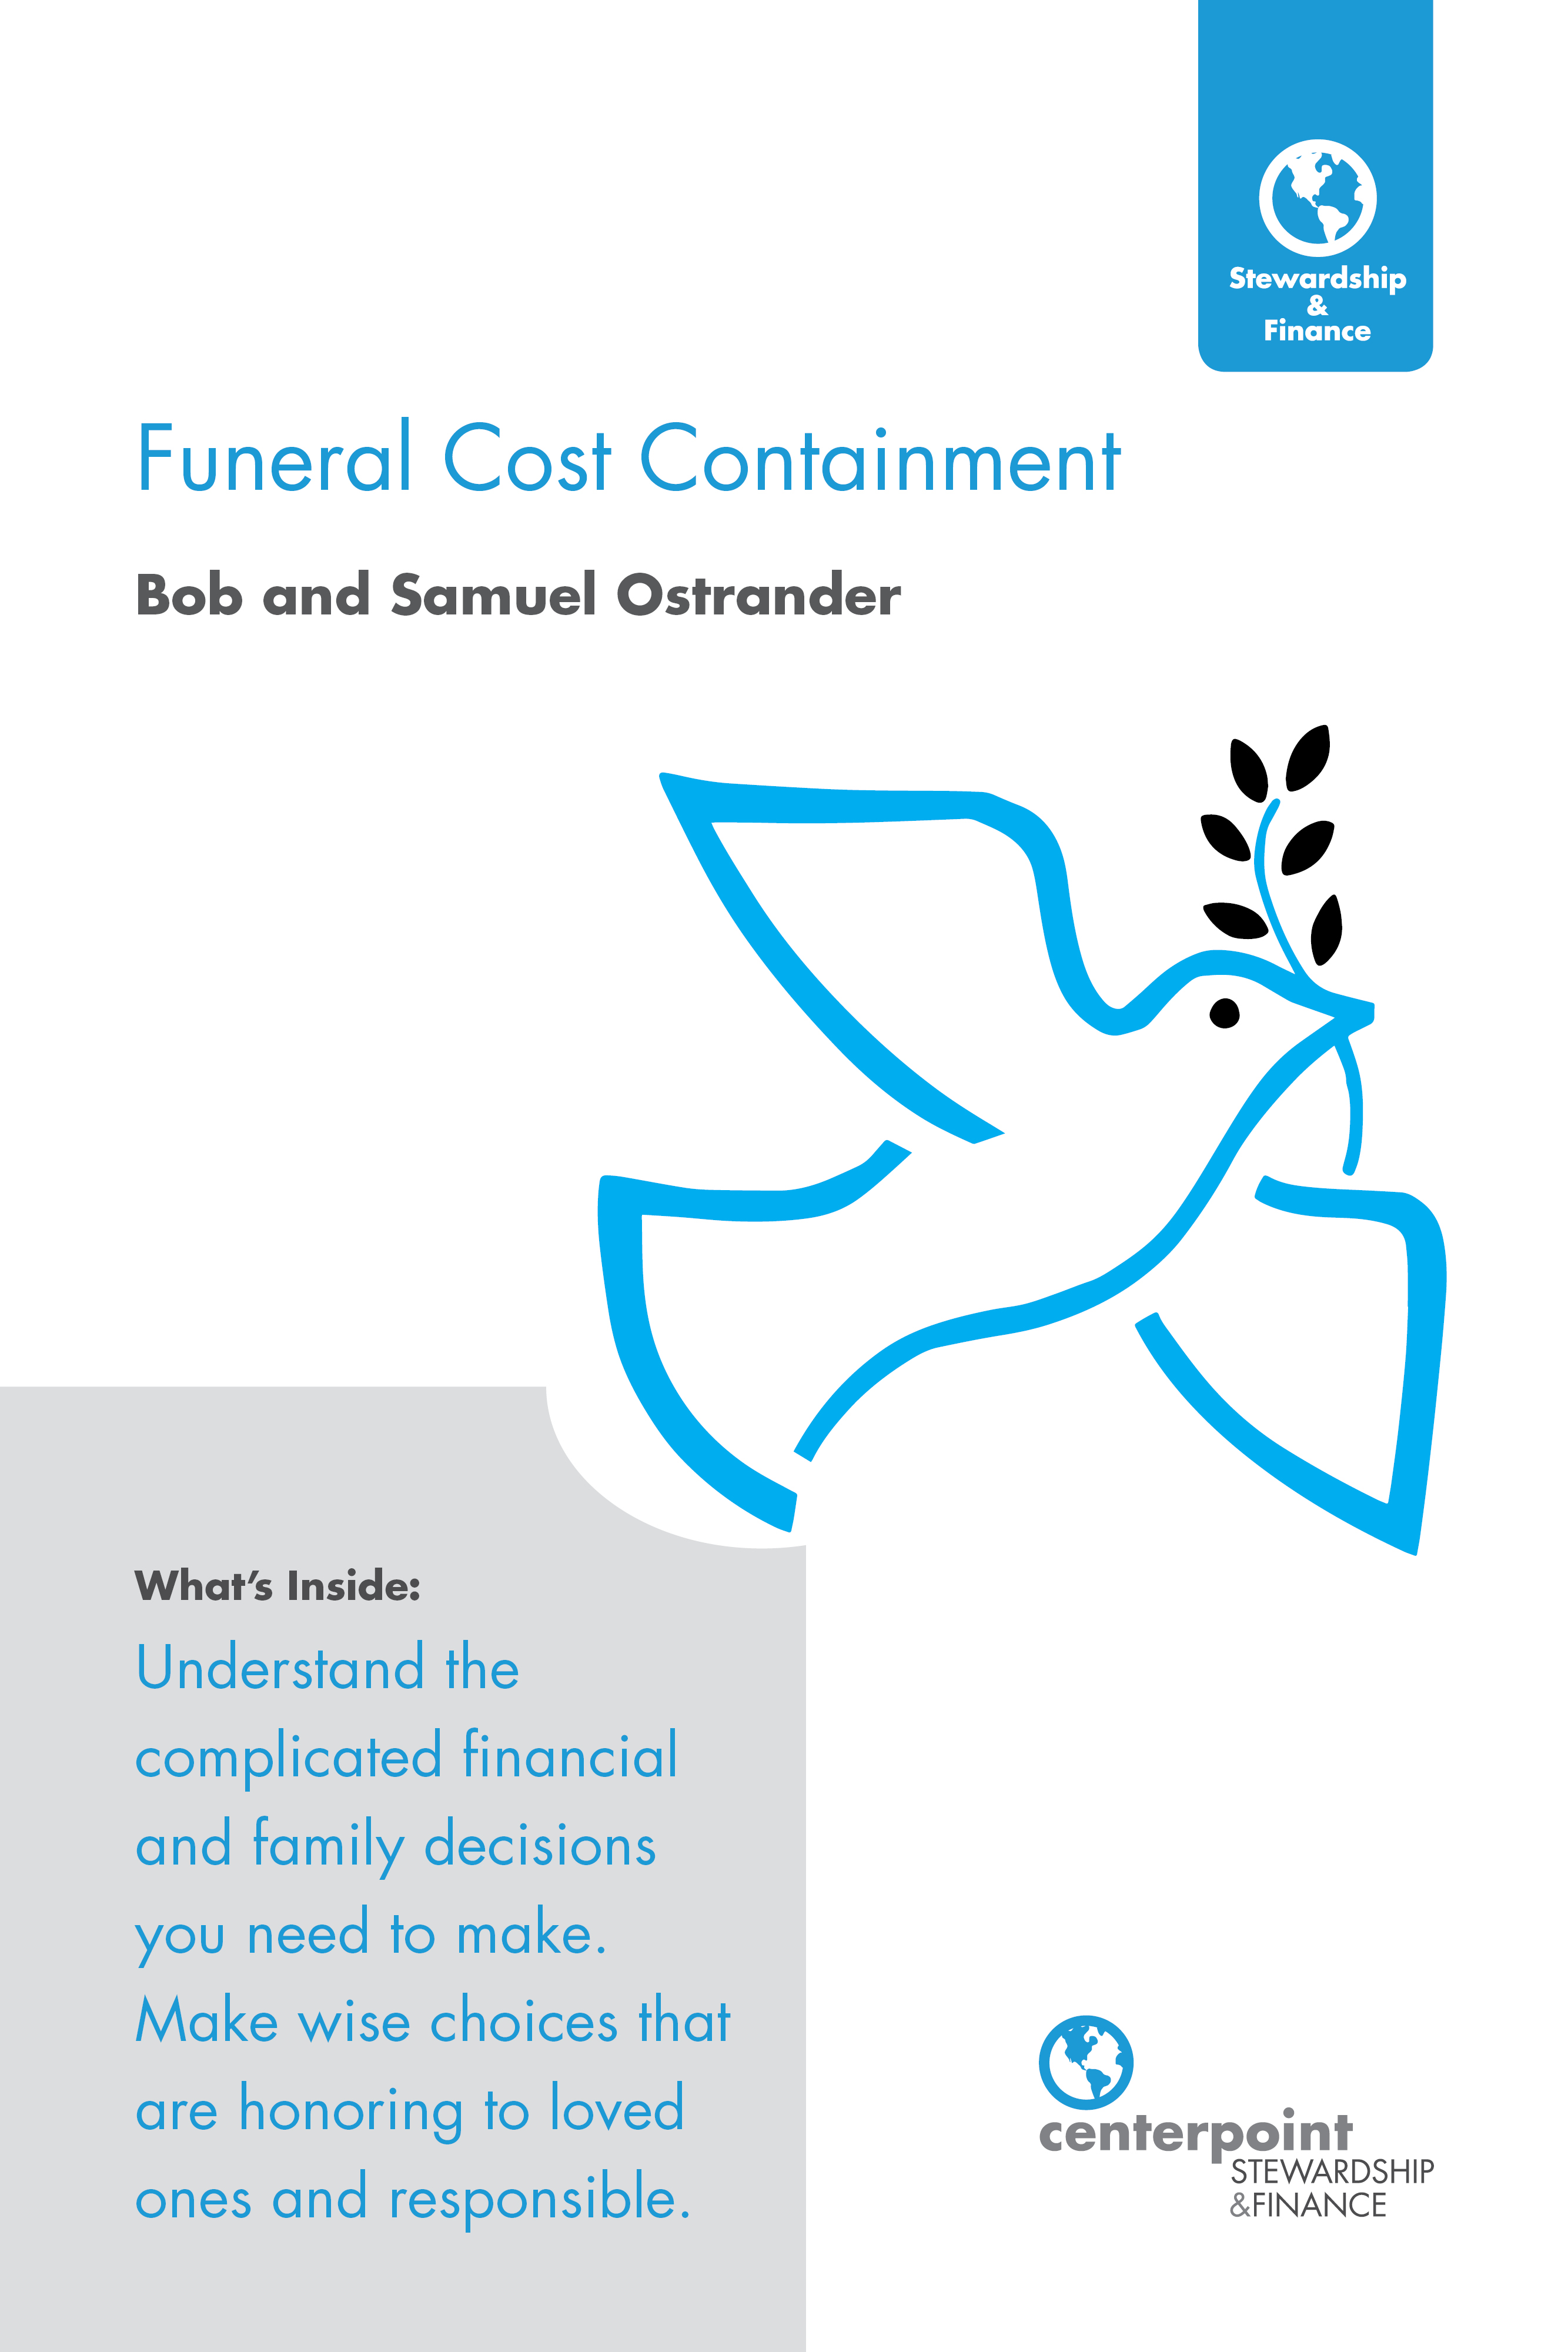 Funeral Cost Containment